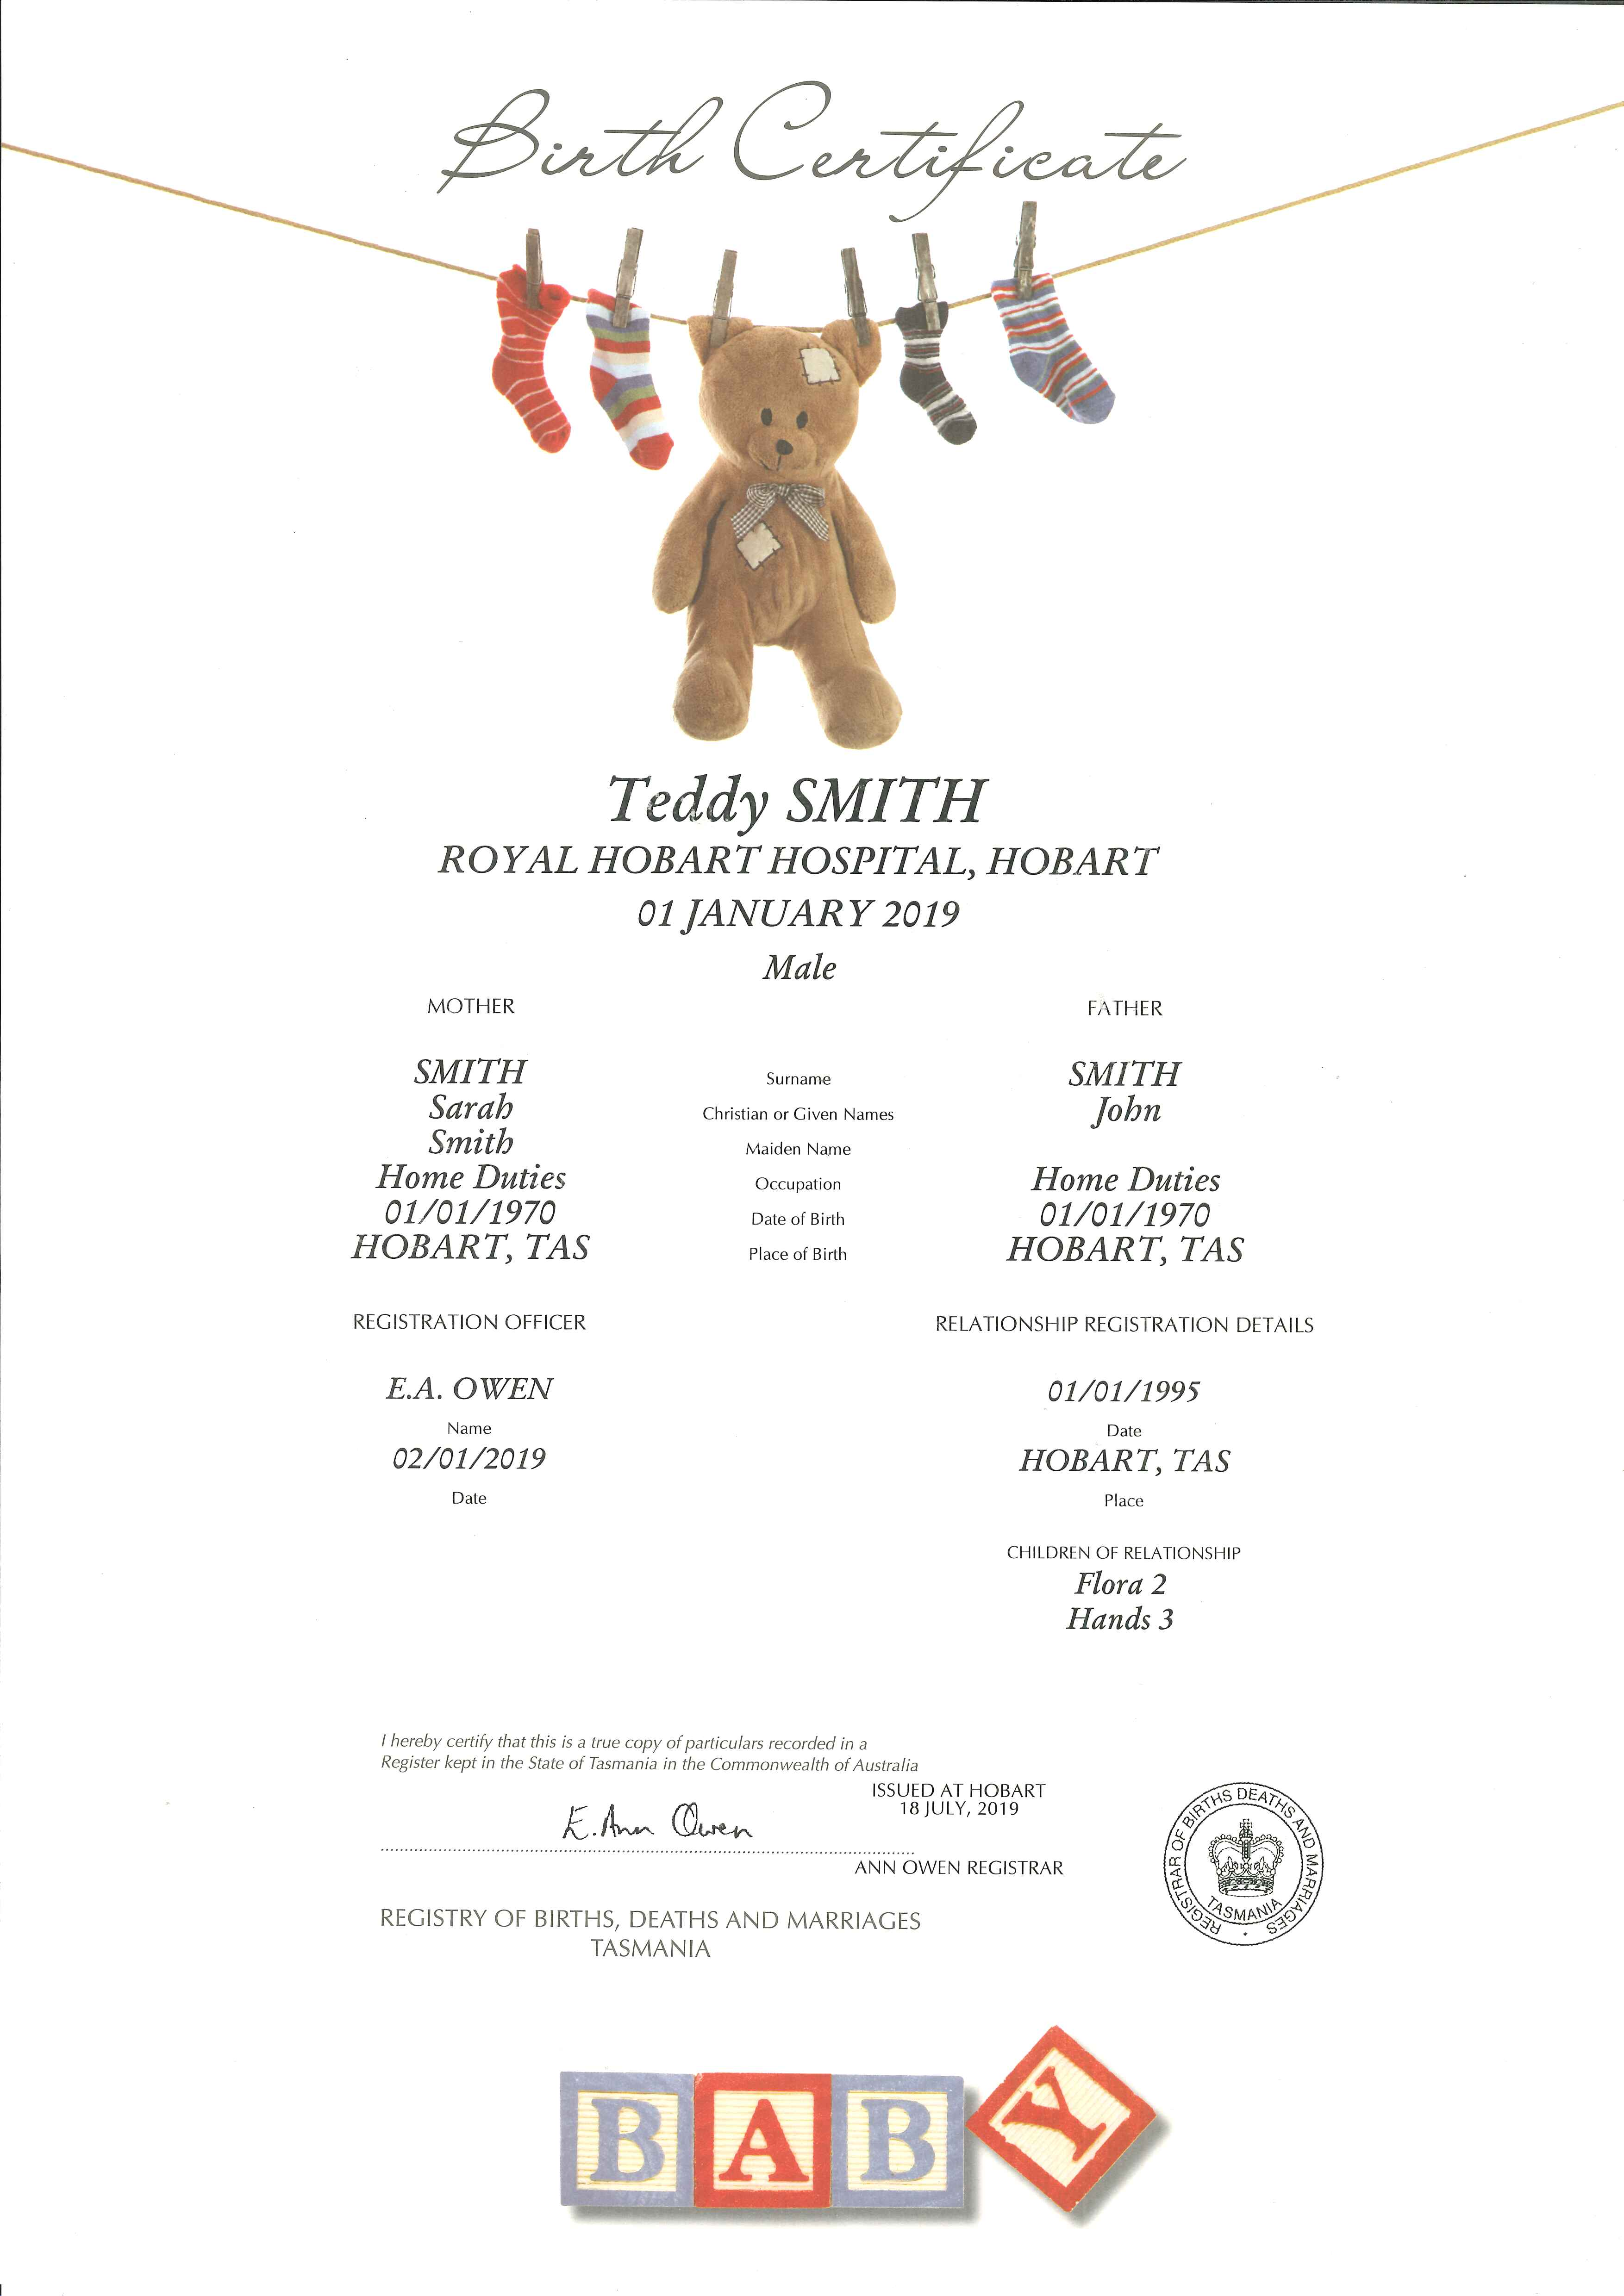 Decorative Birth Certificate. At the top of the page is a washing line with a teddy bear and baby's socks pegged on the single line. The teddy is brown with patches and the socks are multi coloured stripes, mainly in reds and blue. At the bottom of the page are baby blocks in shades of red and blue (matching the socks) spelling BABY.